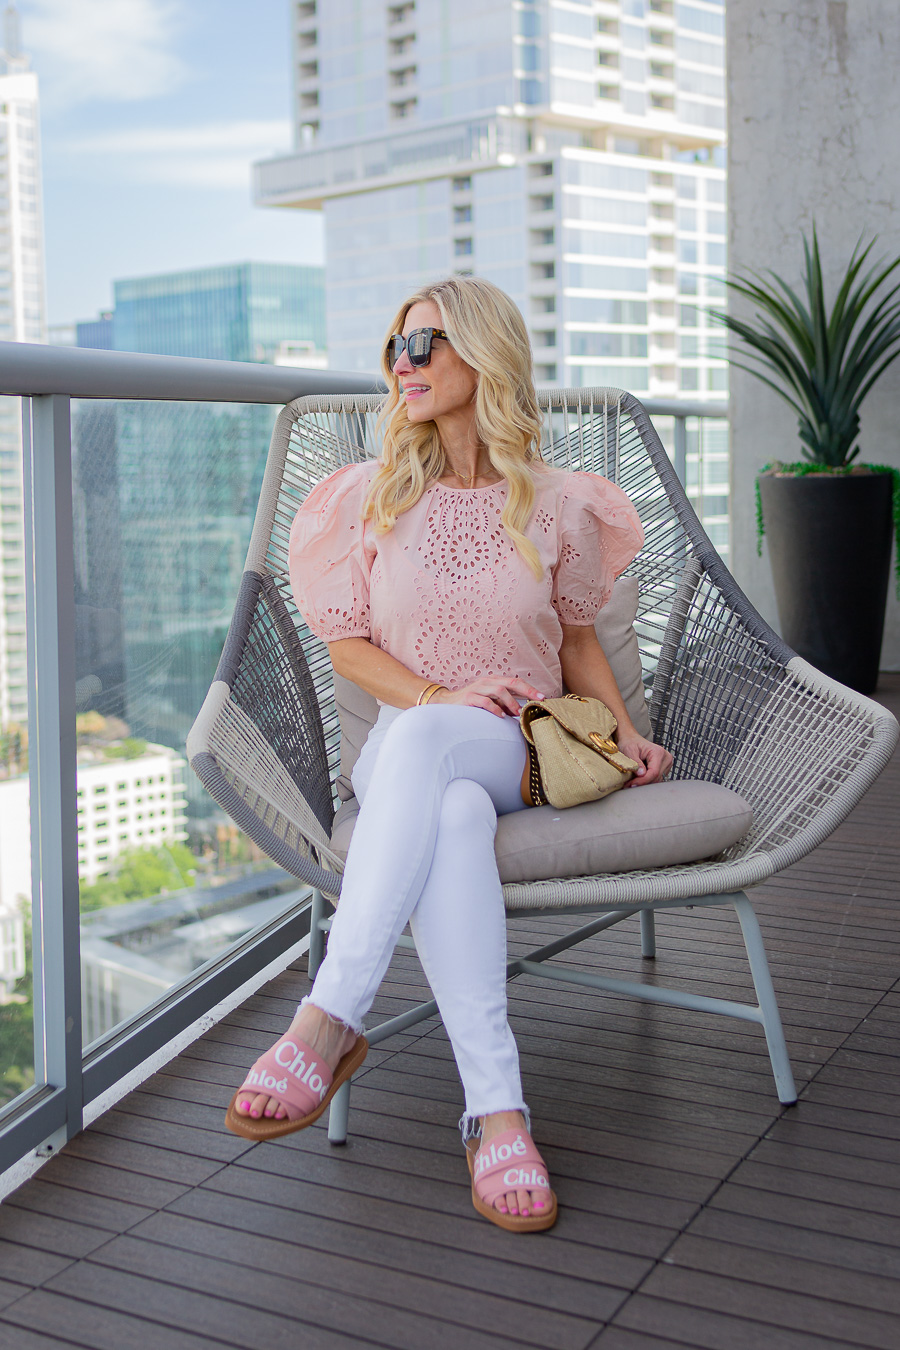 girl with sunglasses, white jeans, puffy sleeve top and chair